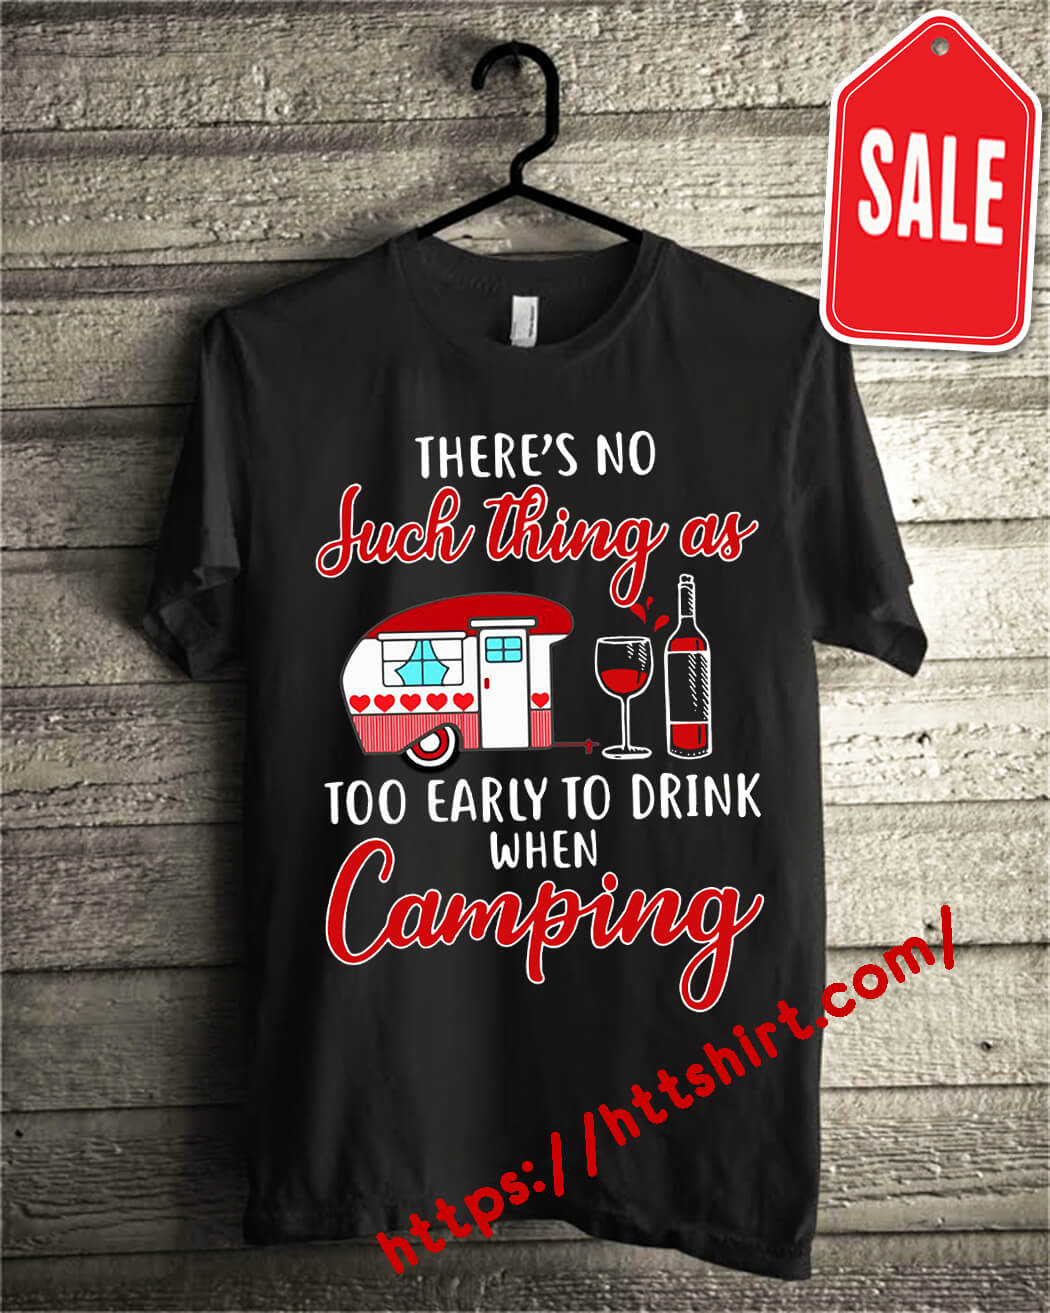 There's no such thing as too early to drink when camping shirt